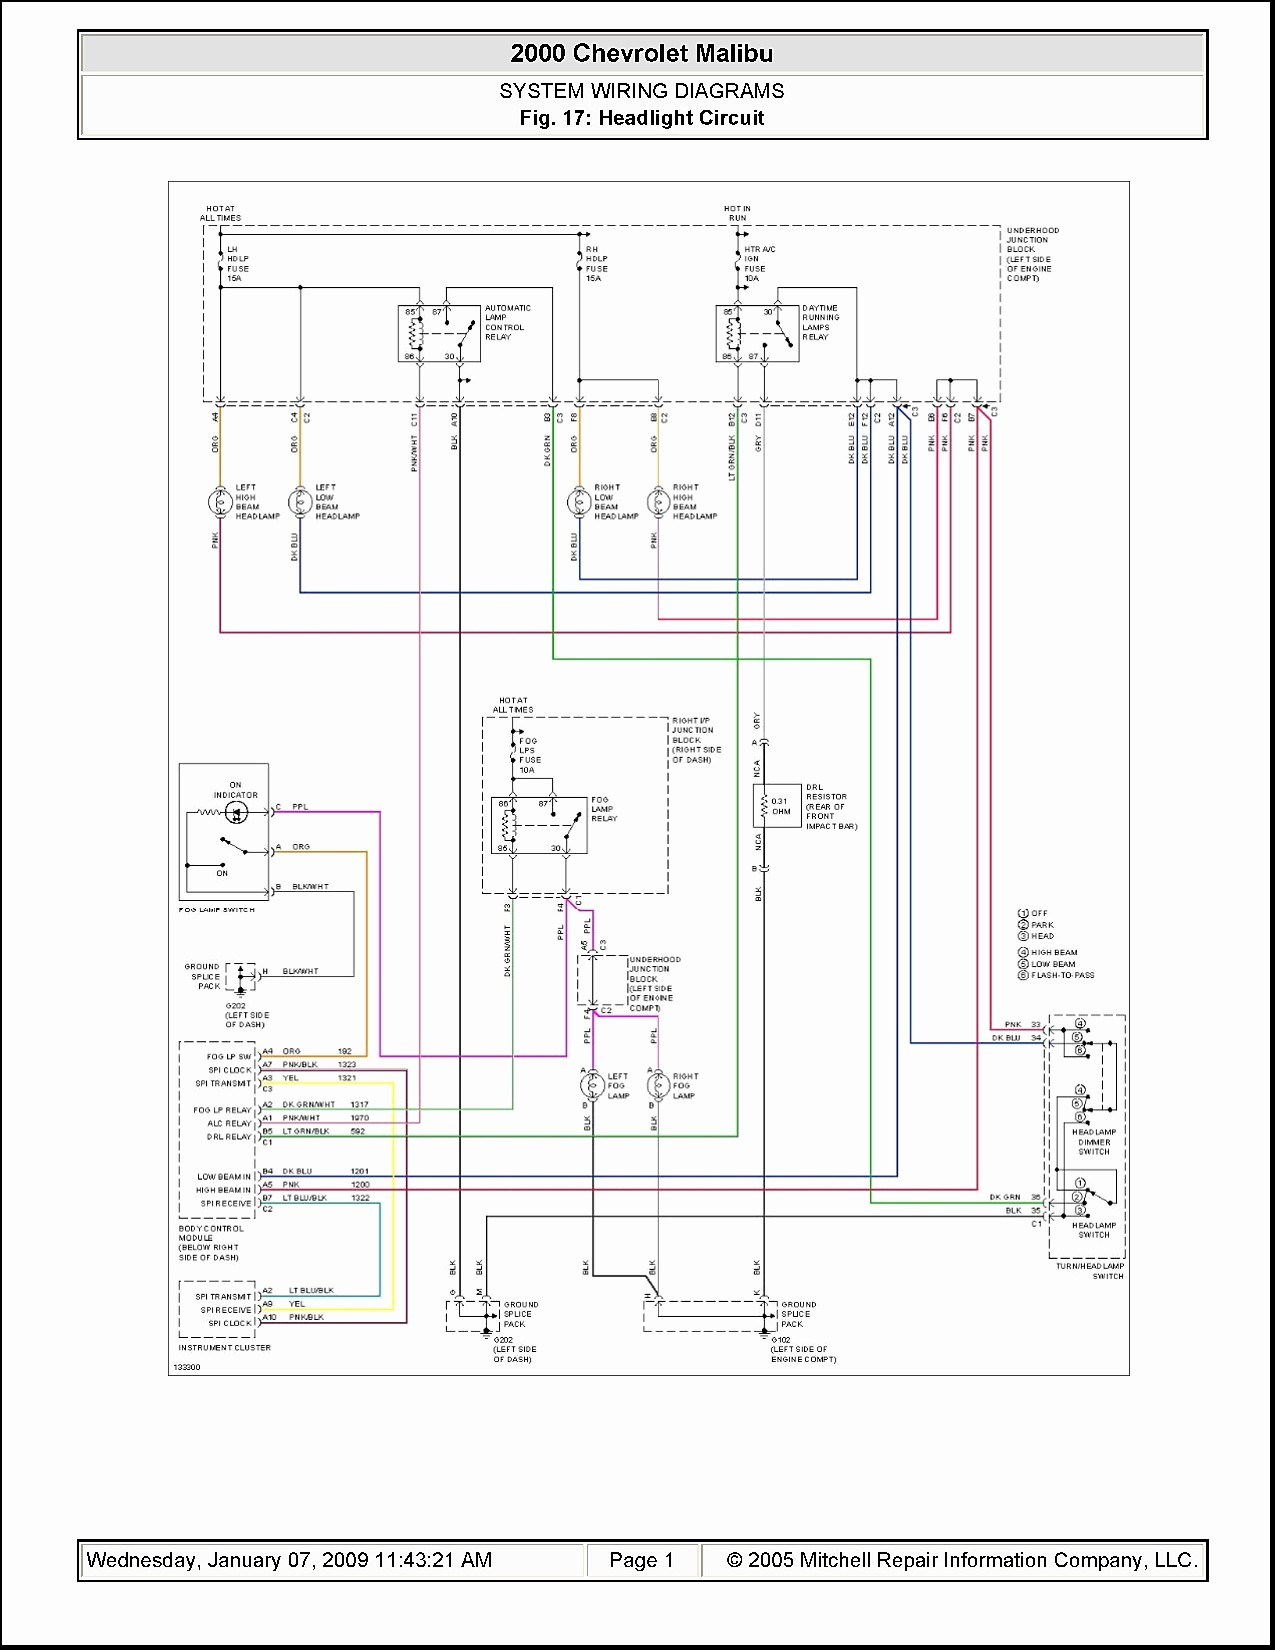 2004 hyundai santa fe car stereo radio wiring diagram math fraction